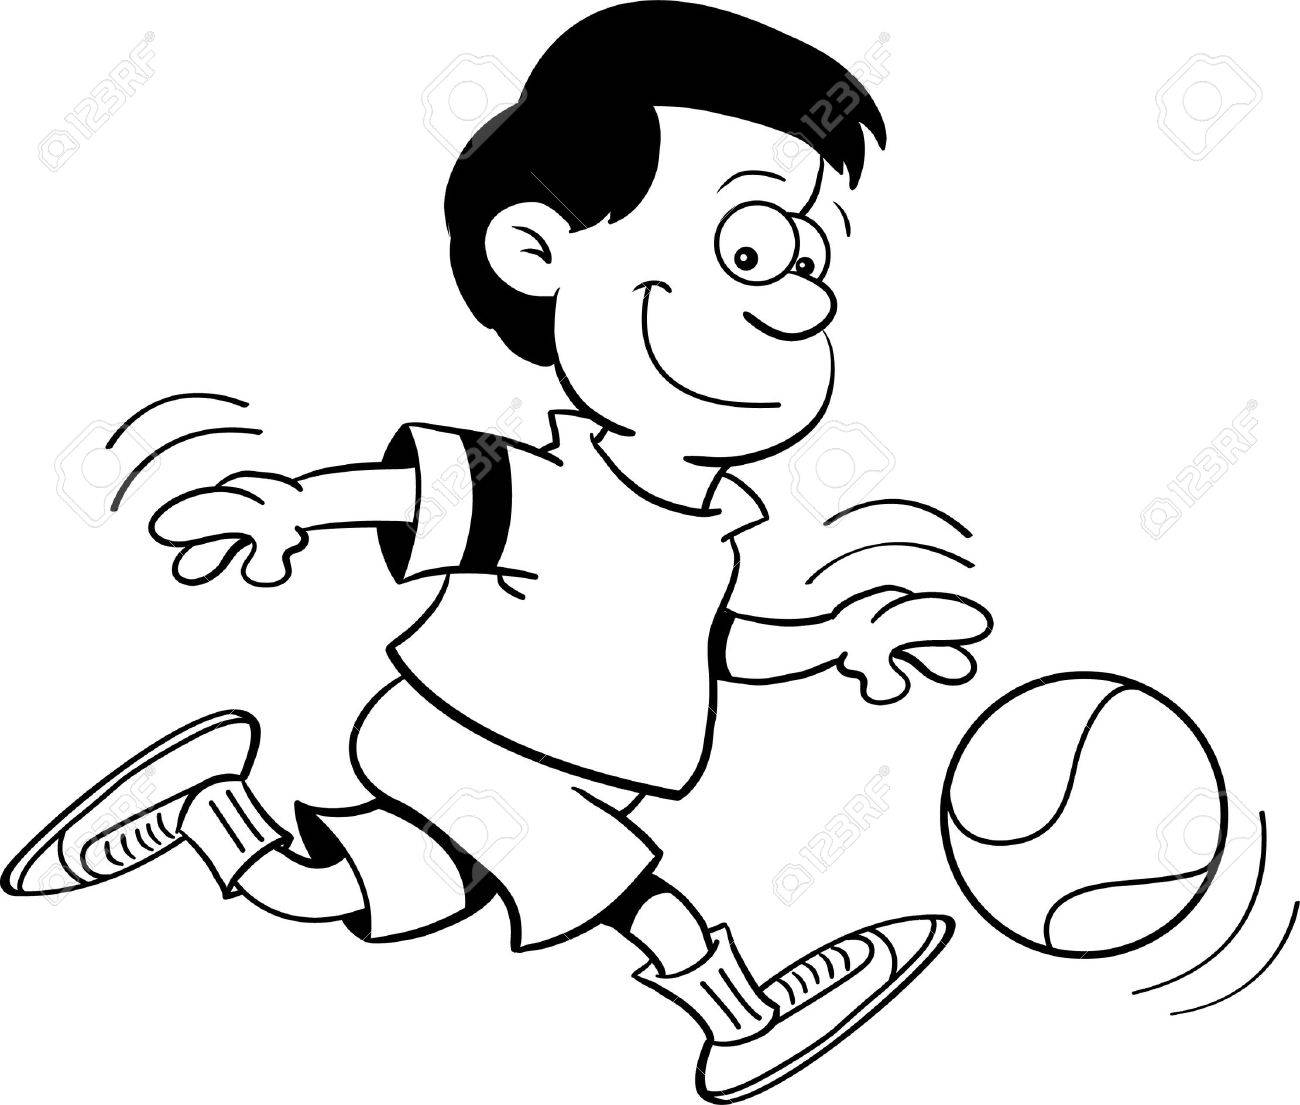 hight resolution of black and white illustration of a boy playing basketball stock vector 15114933